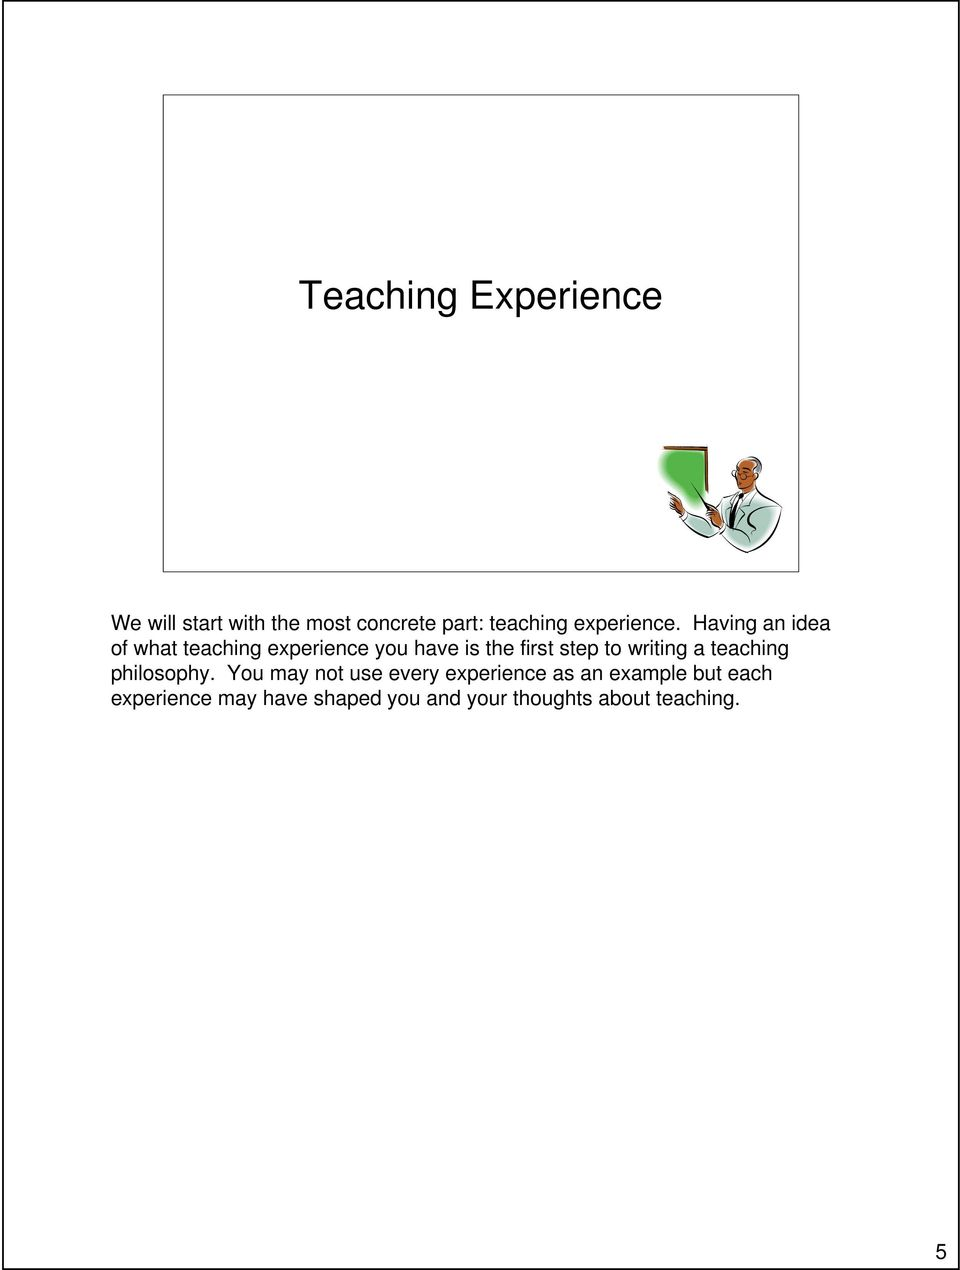 Having an idea of what teaching experience you have is the first step to